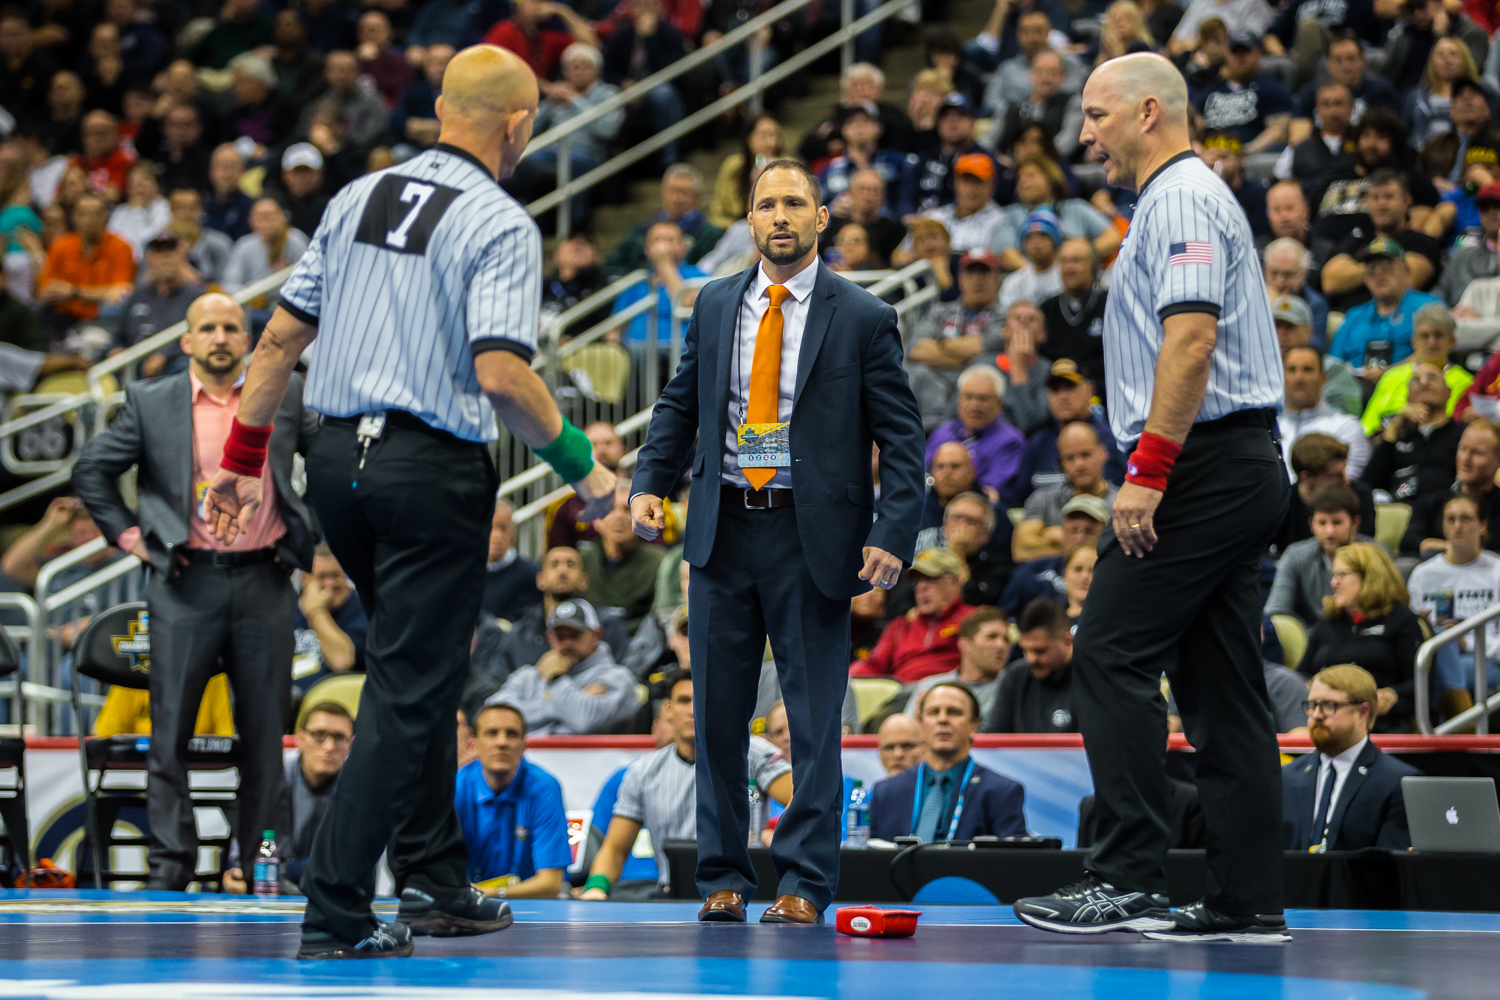 Virginia+head+coach+Steve+Garland+throws+the+challenge+brick+during+the+125-pound+final+bout+at+the+2019+NCAA+D1+Wrestling+Championships+at+PPG+Paints+Arena+in+Pittsburgh%2C+PA+on+Saturday%2C+March+23%2C+2019.+Lee+won+by+decision%2C+5-0%2C+and+defended+his+national+title.